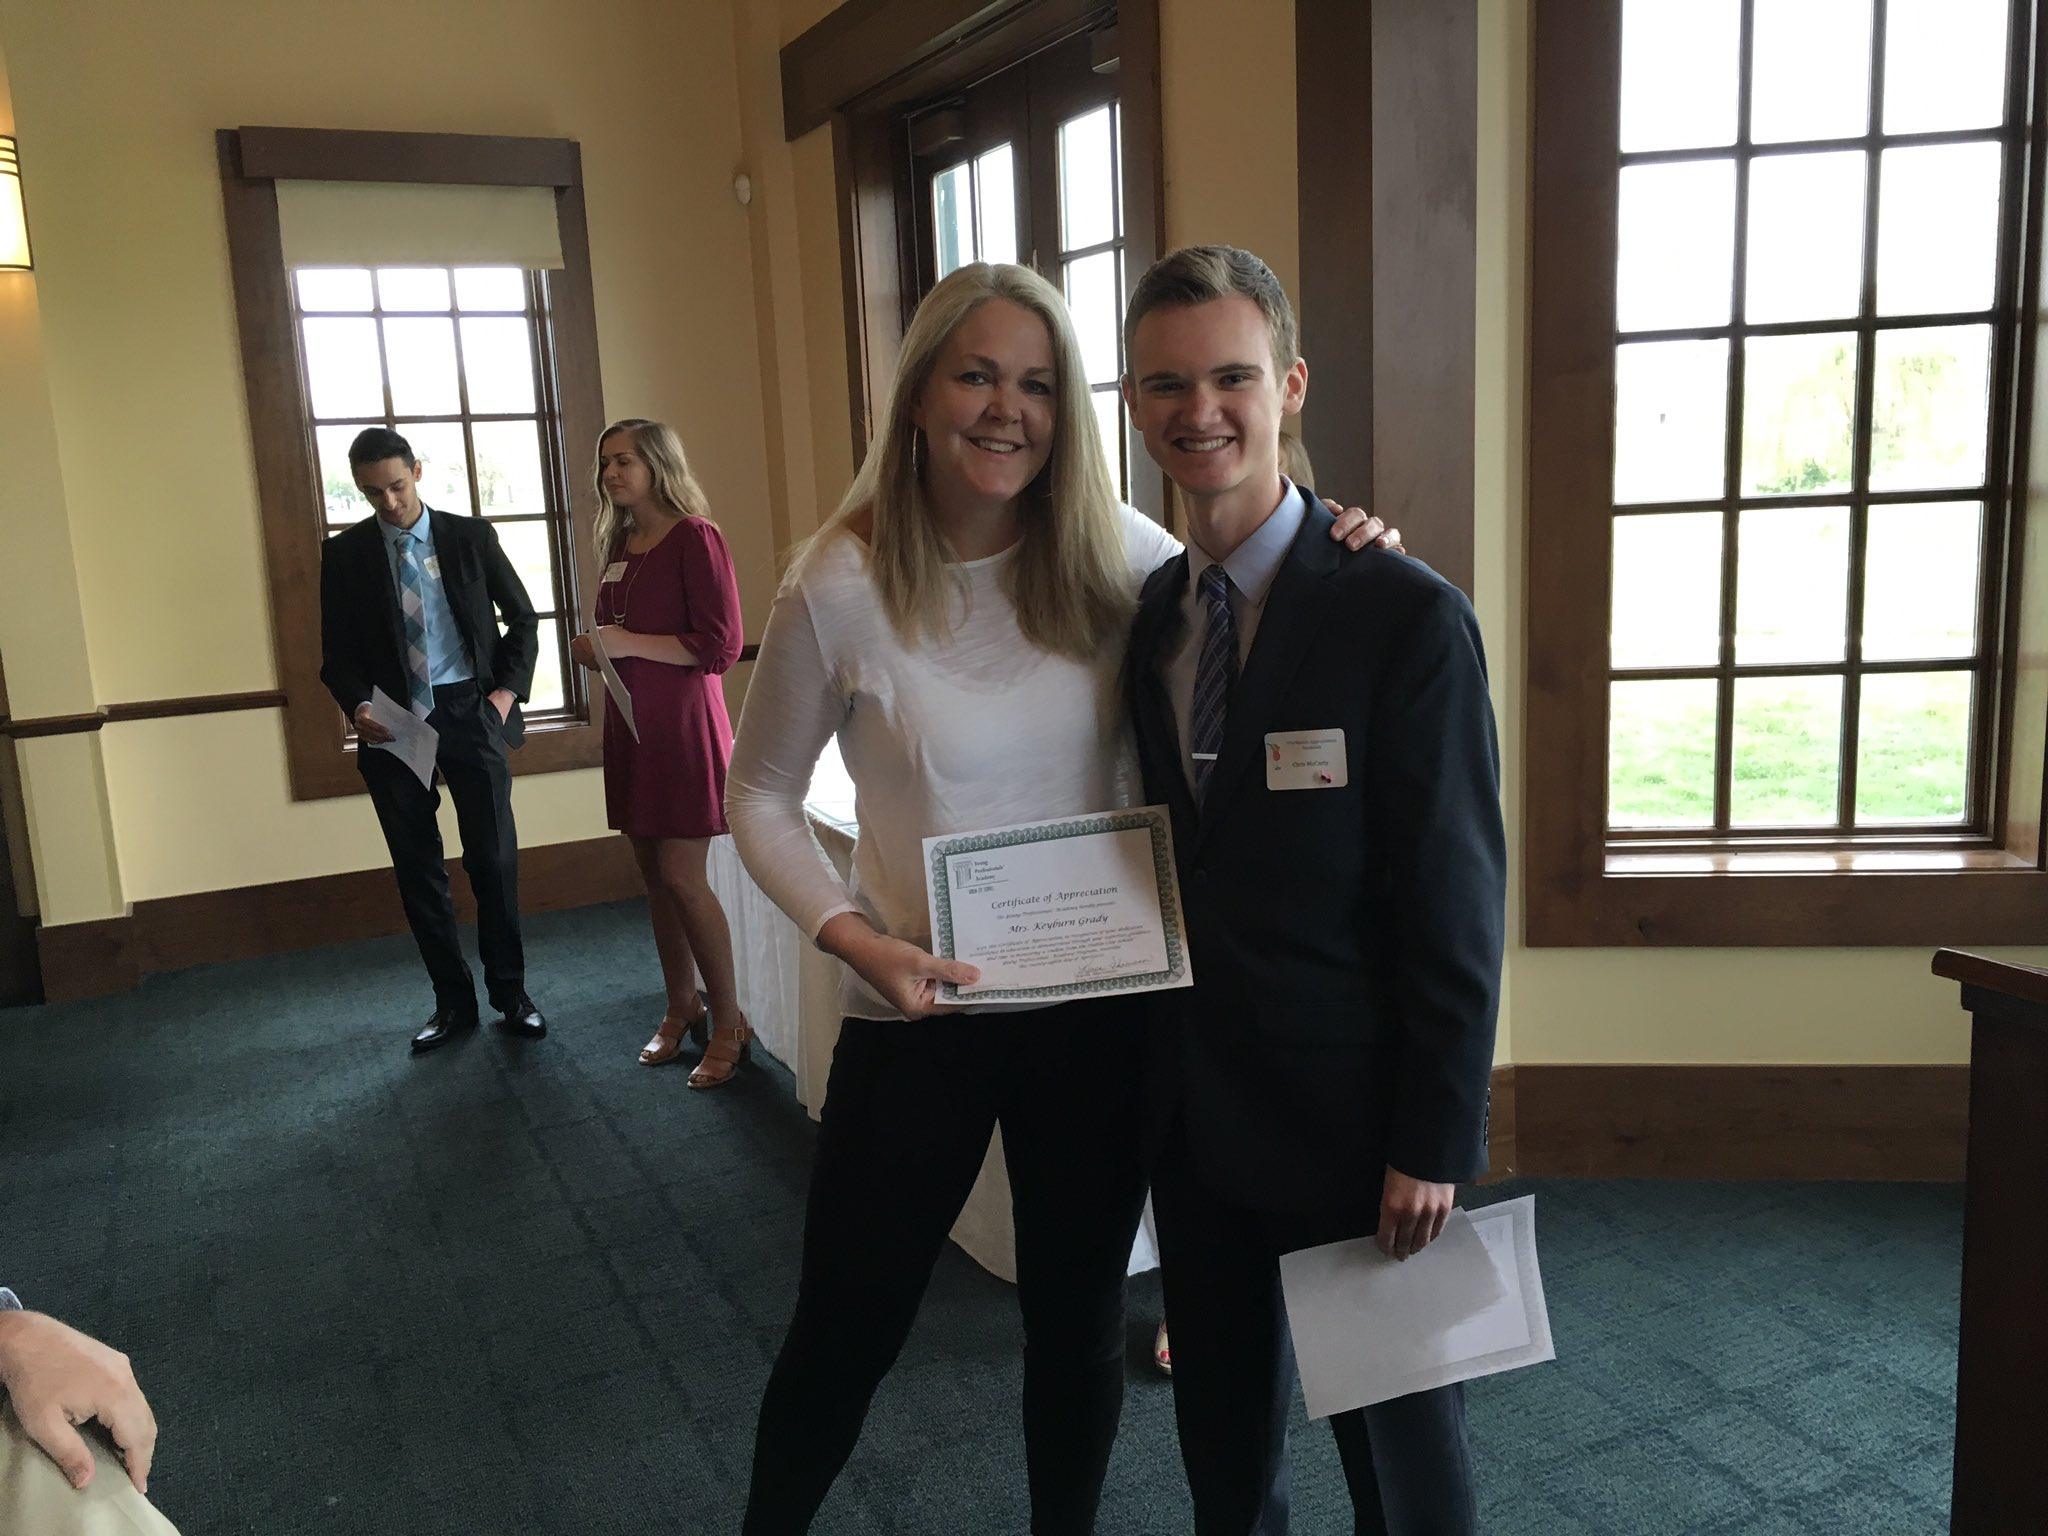 .@dublinalumni Director Keyburn Grady honored by @ypadublin for being an internship mentor this semester. #theDublinDifference https://t.co/BBC7YZ5Bjq